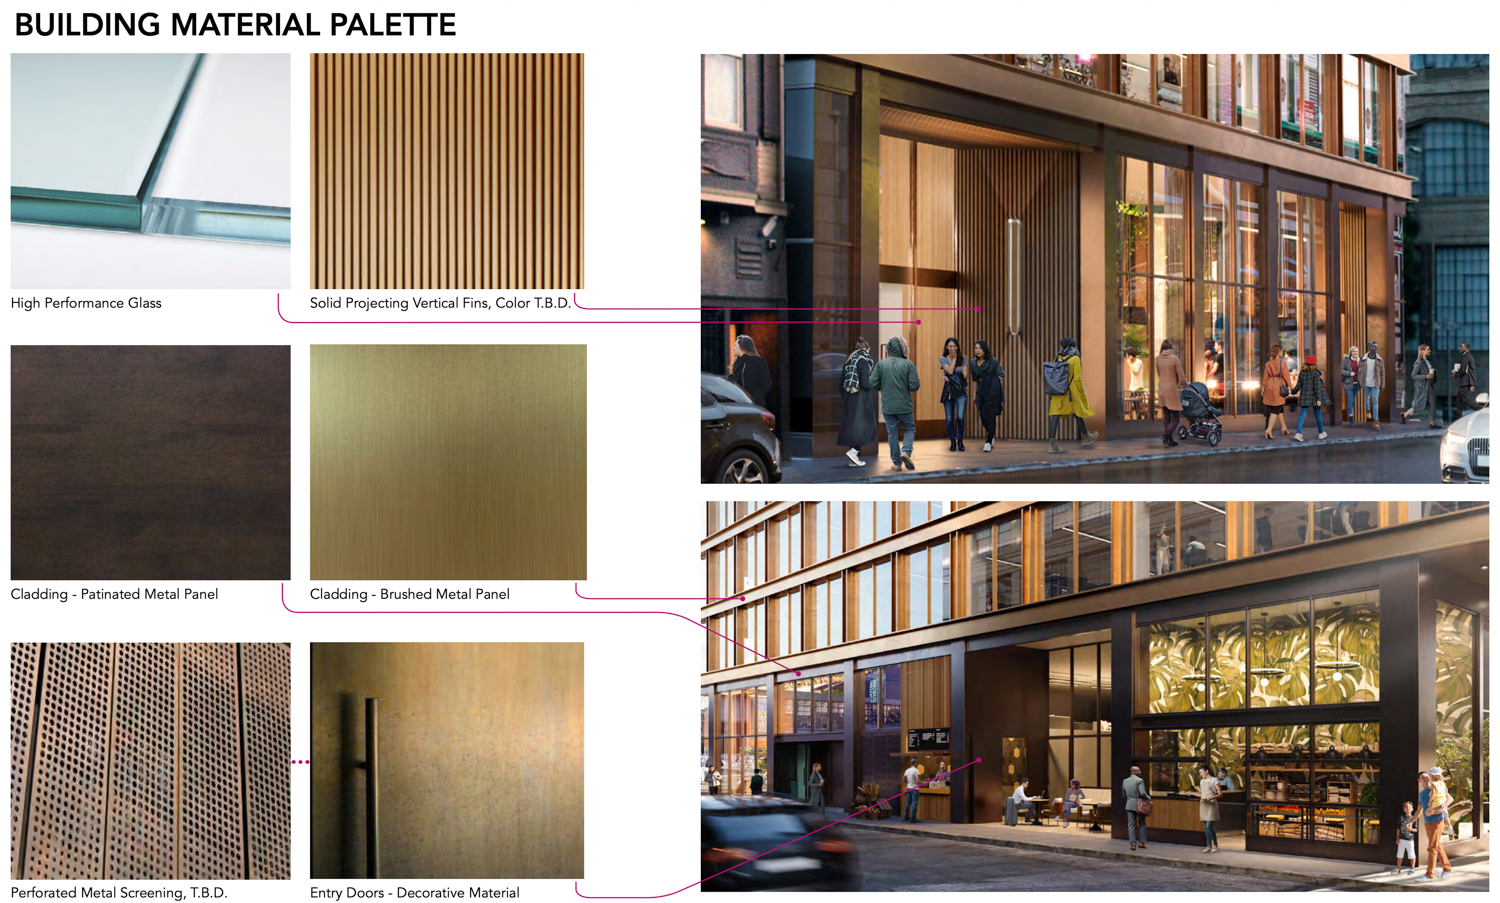 531 Bryant Street building material palette, by Handel Architects